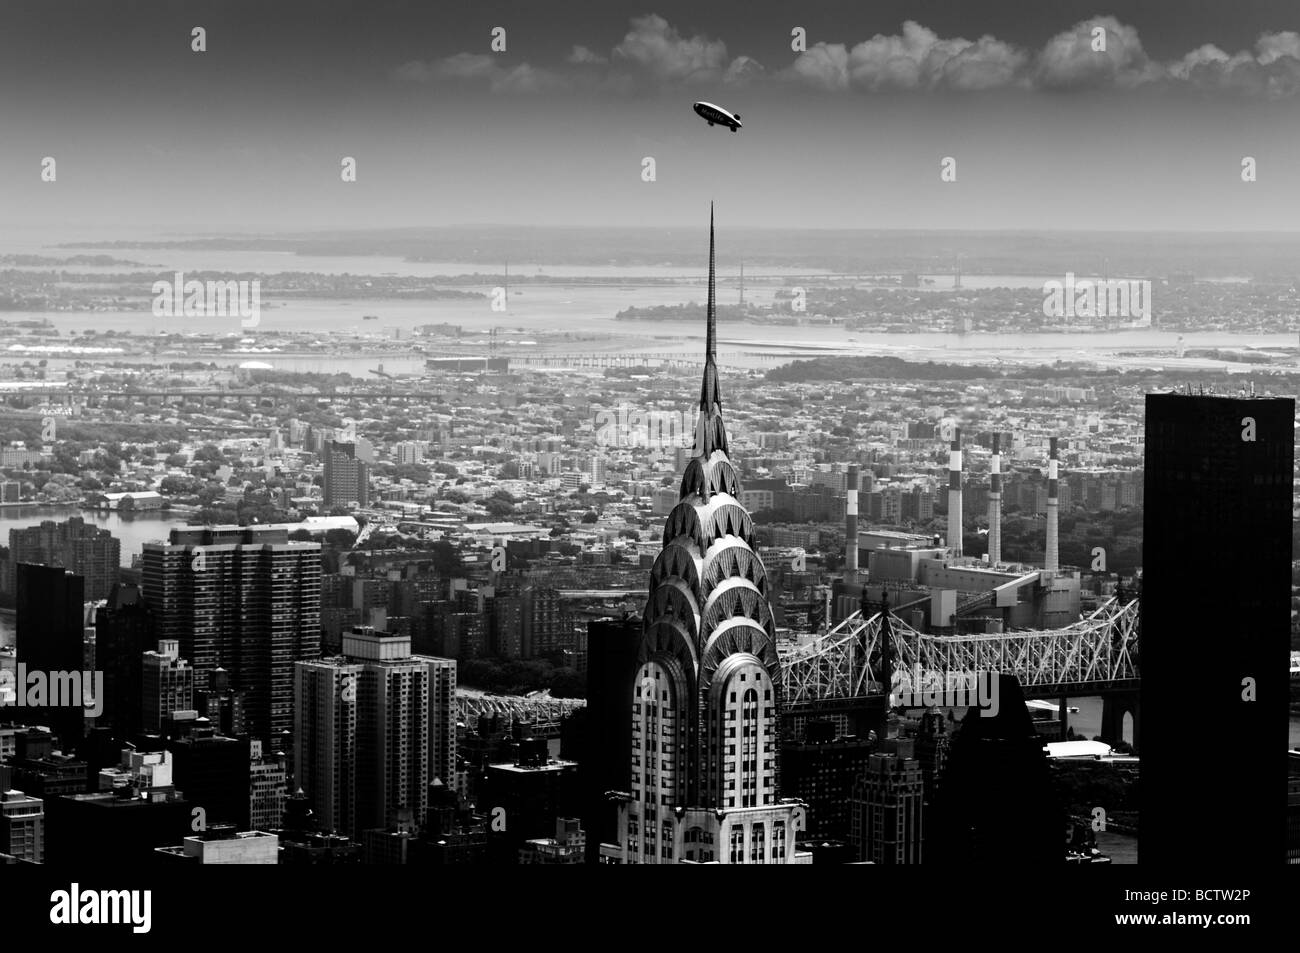 The Crystler Building with a Goodyear blimp flying overhead seen from the top of the Empire State Building - Stock Image